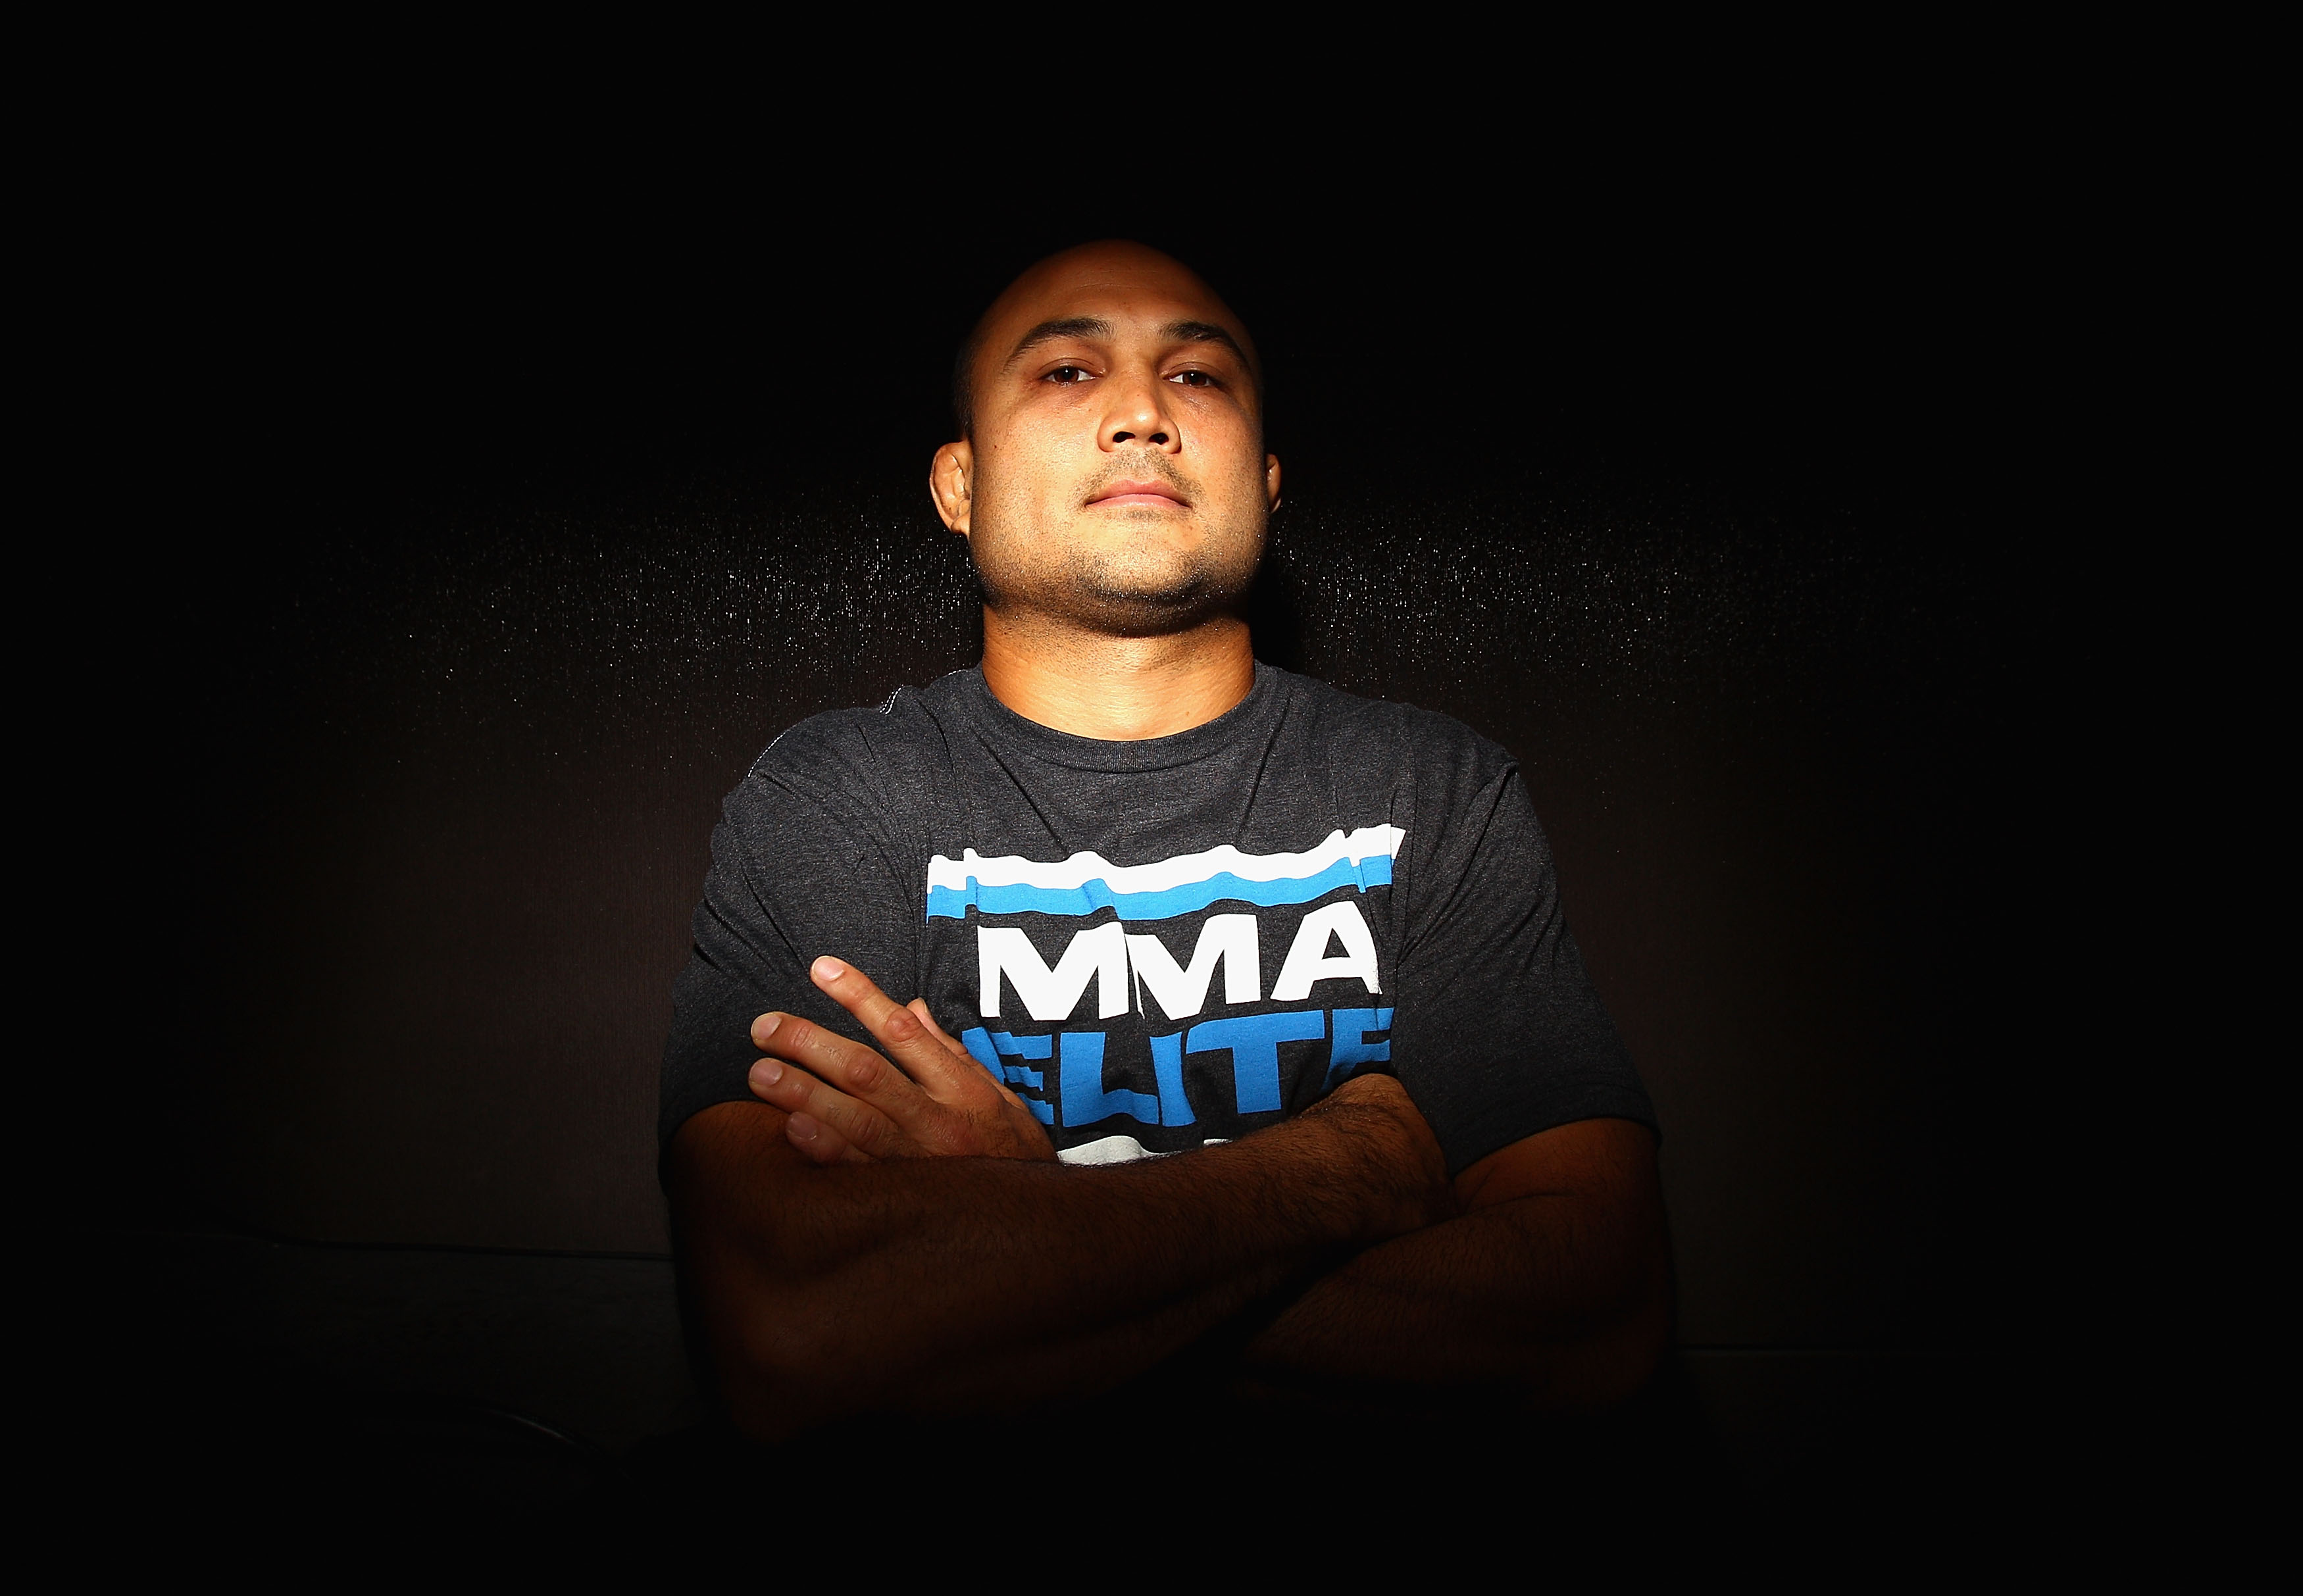 SYDNEY, AUSTRALIA - FEBRUARY 23:  BJ Penn of the USA poses during a Press Conference ahead of UFC 127 at Star City on February 23, 2011 in Sydney, Australia.  (Photo by Ryan Pierse/Getty Images)